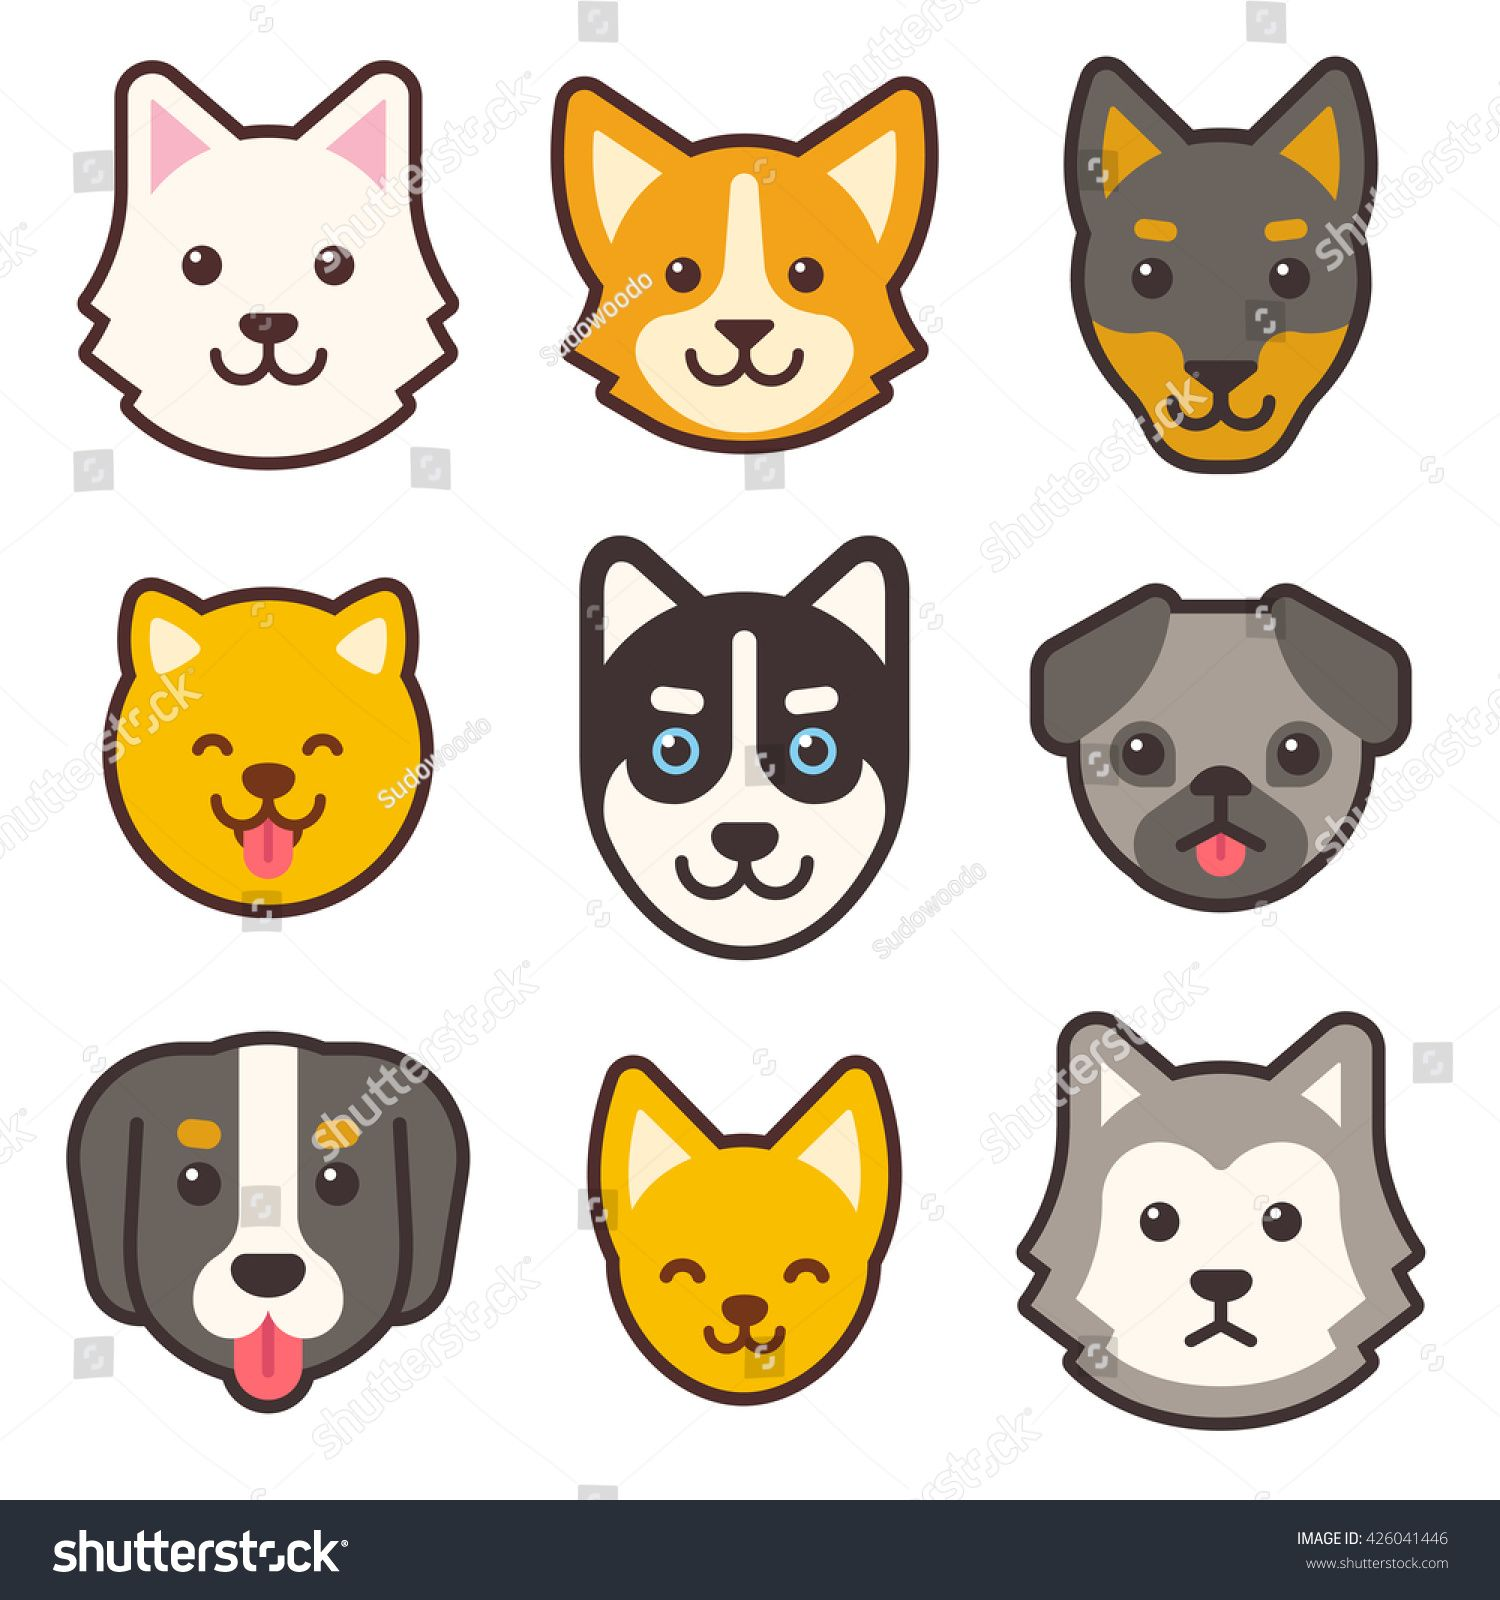 Stock Vector Cartoon Dog Faces Set Different Breeds Of Dogs Husky